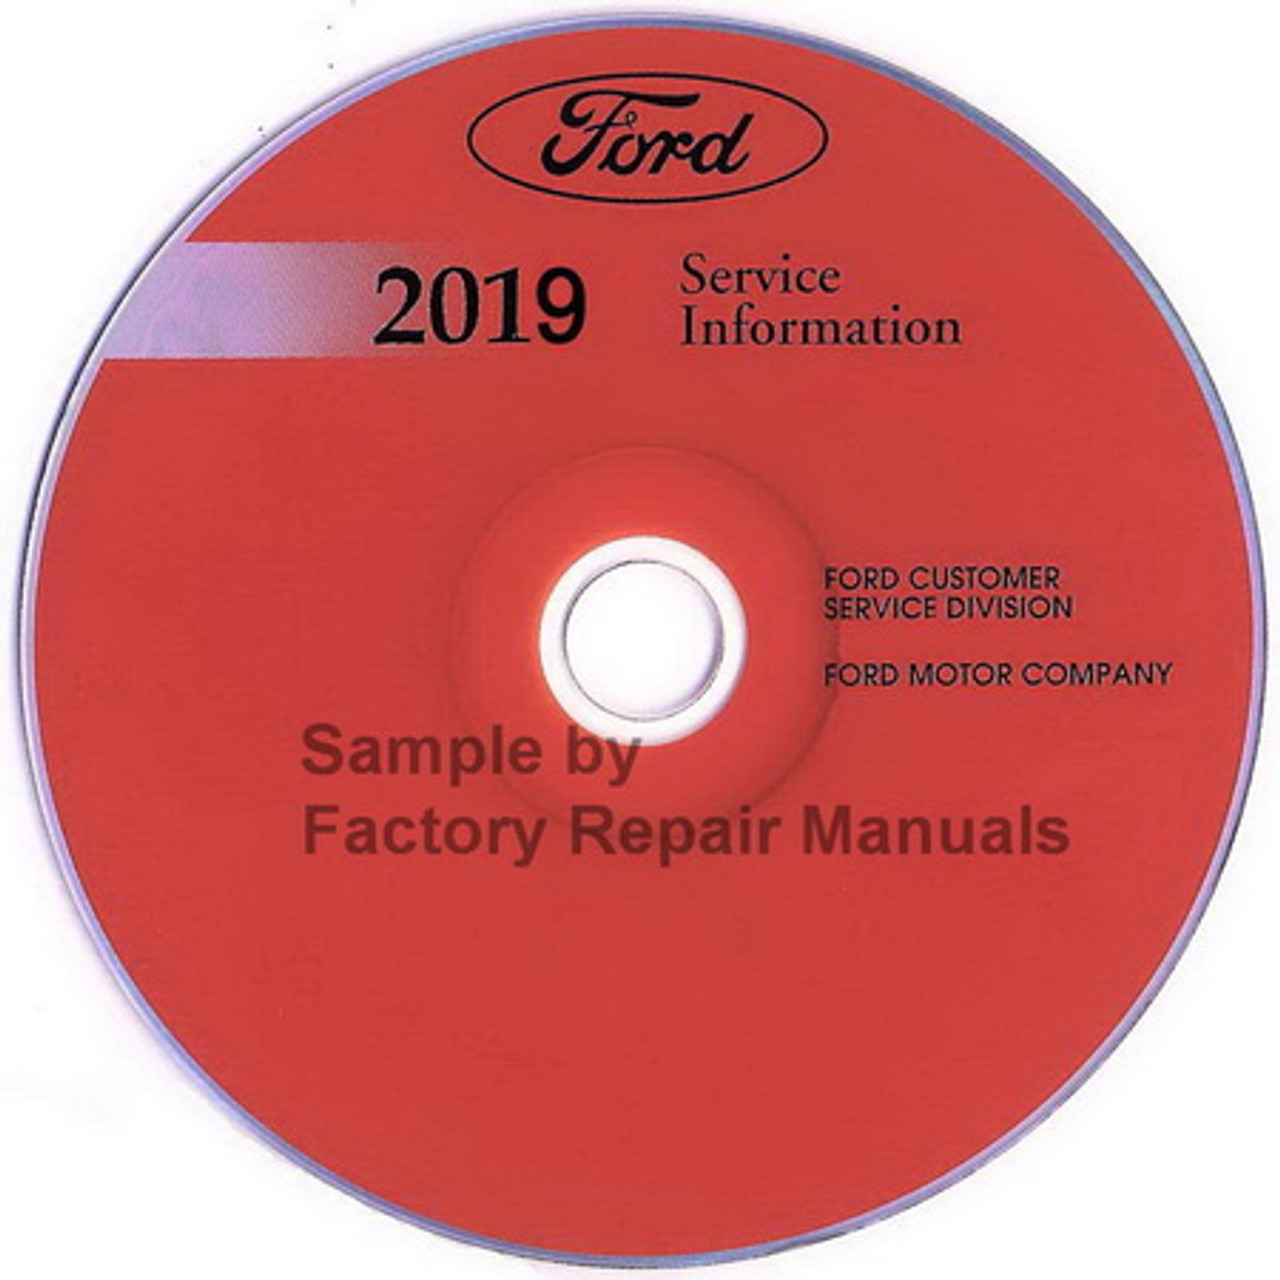 2018 Ford Fusion Service Shop Repair Workshop Manual ON CD NEW